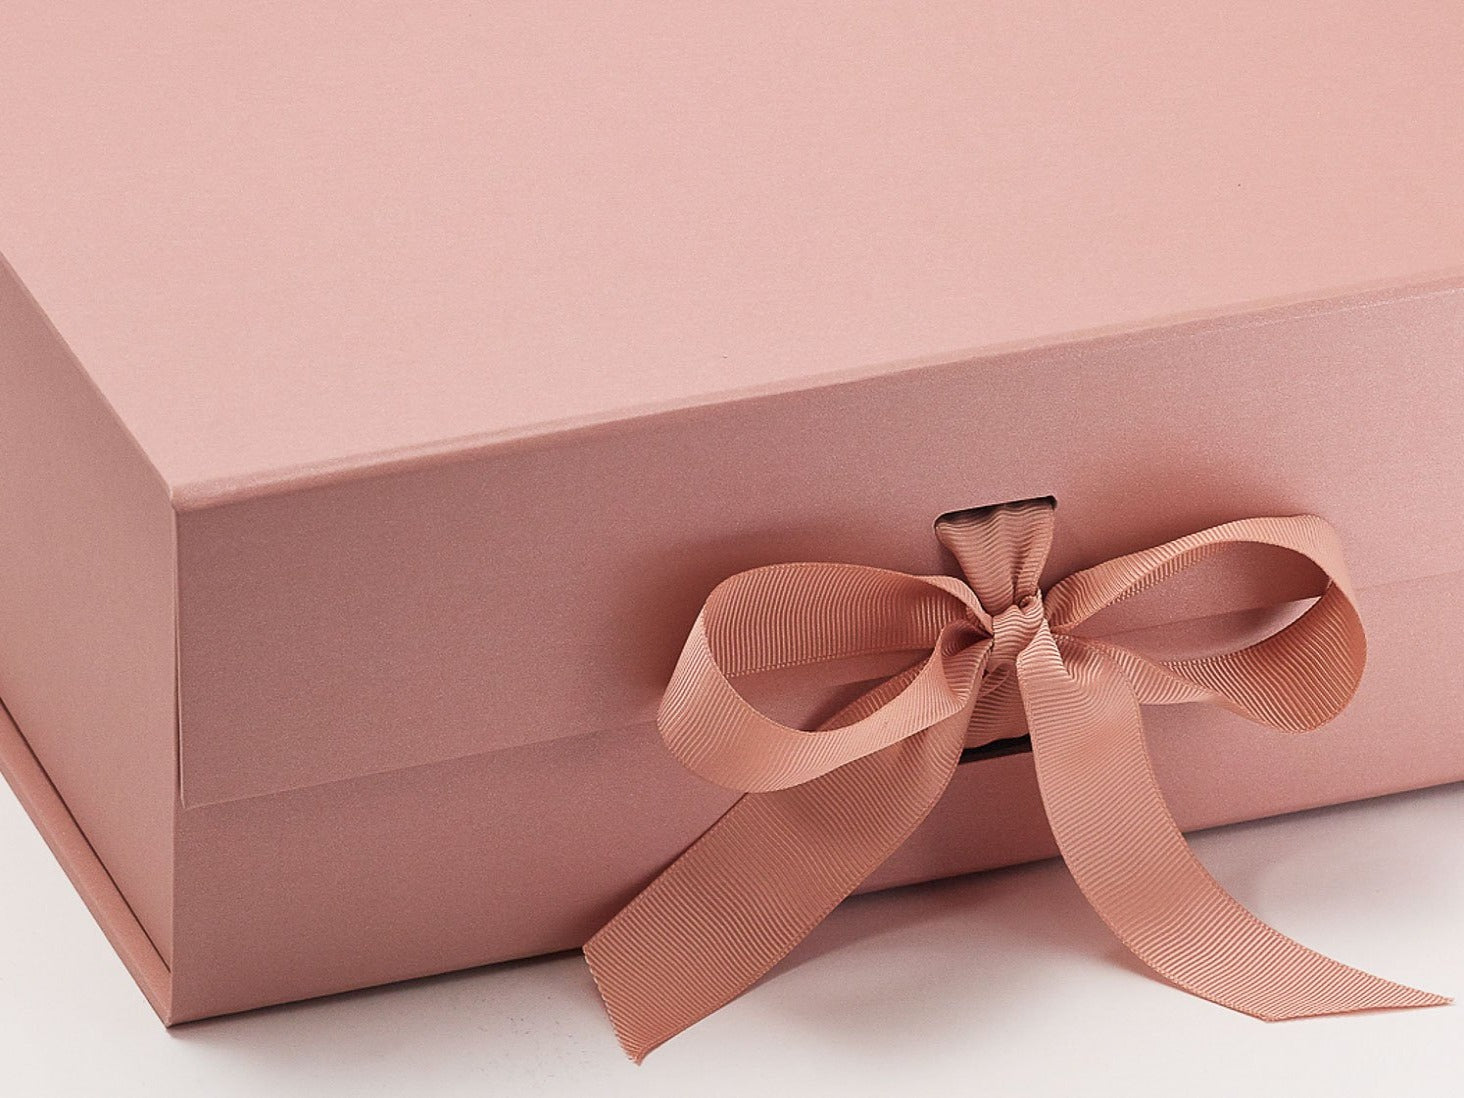 Sample Rose Gold A4 Deep Gift Box for Retail Gift Packaging ...